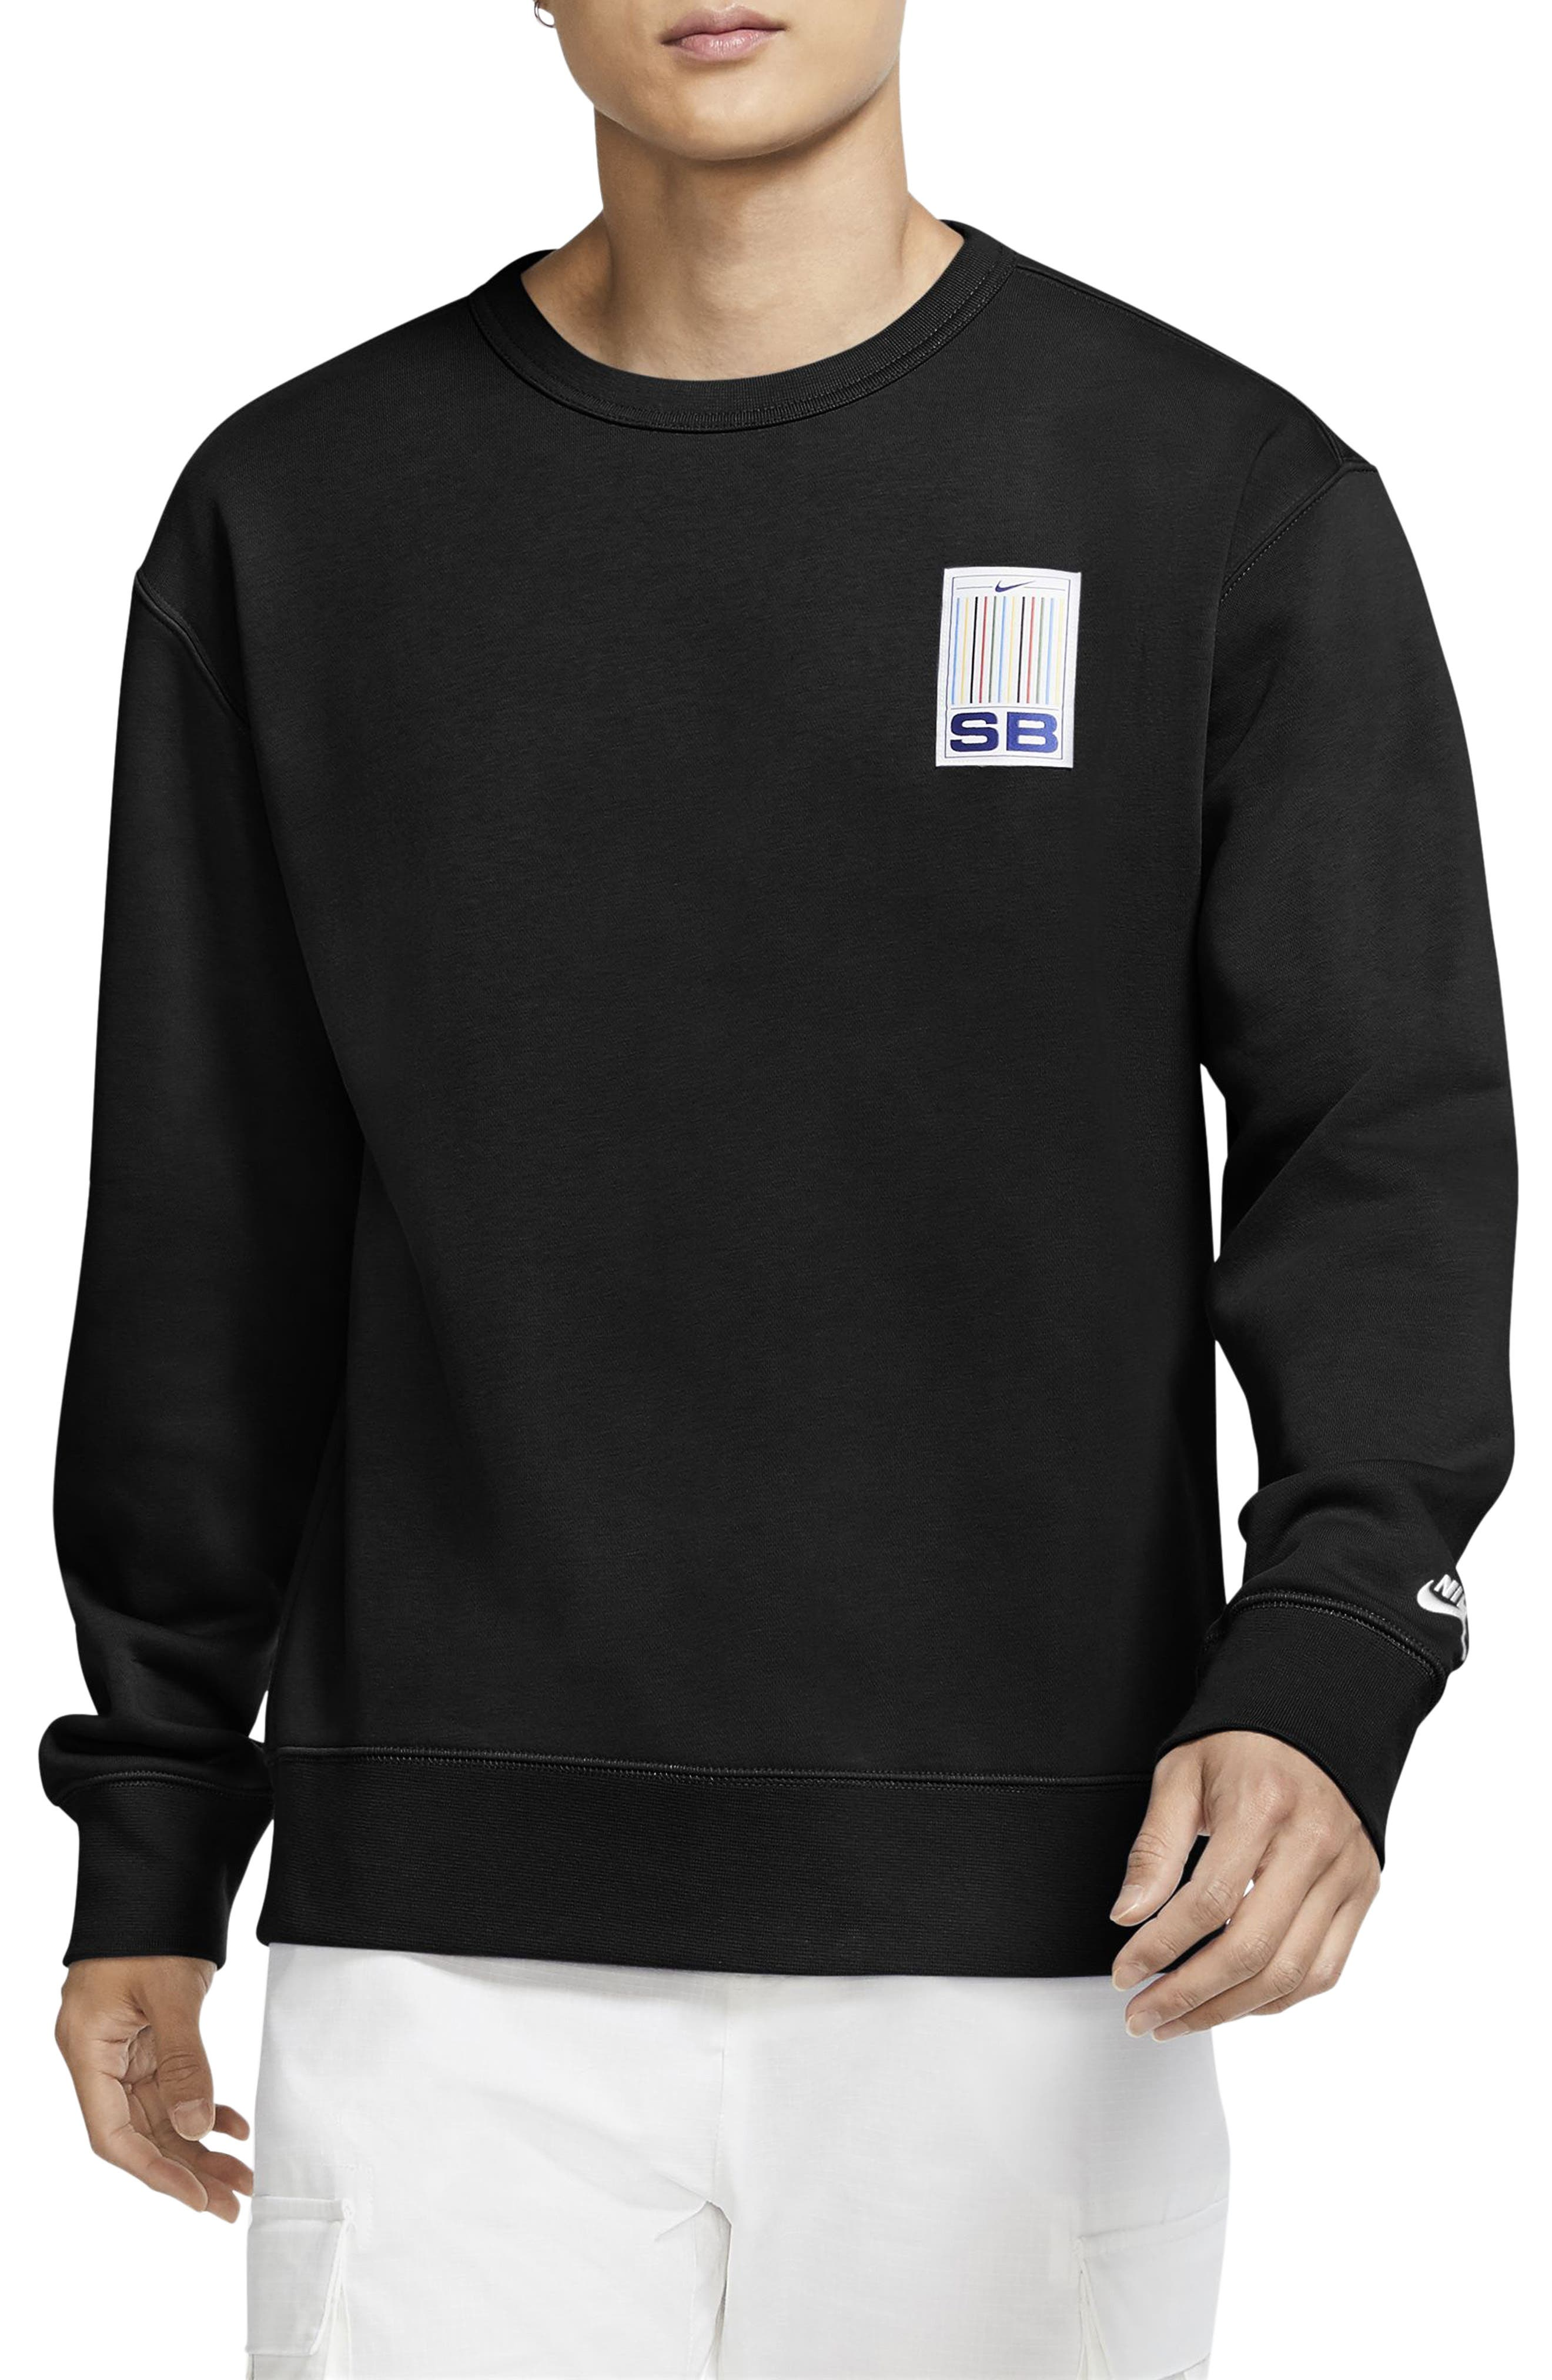 Supersoft fleece brings undeniable comfort to a relaxed crewneck sweatshirt with a colorfully striped logo patch at the chest. Style Name: Nike Stripes Crewneck Sweatshirt. Style Number: 6010377. Available in stores.